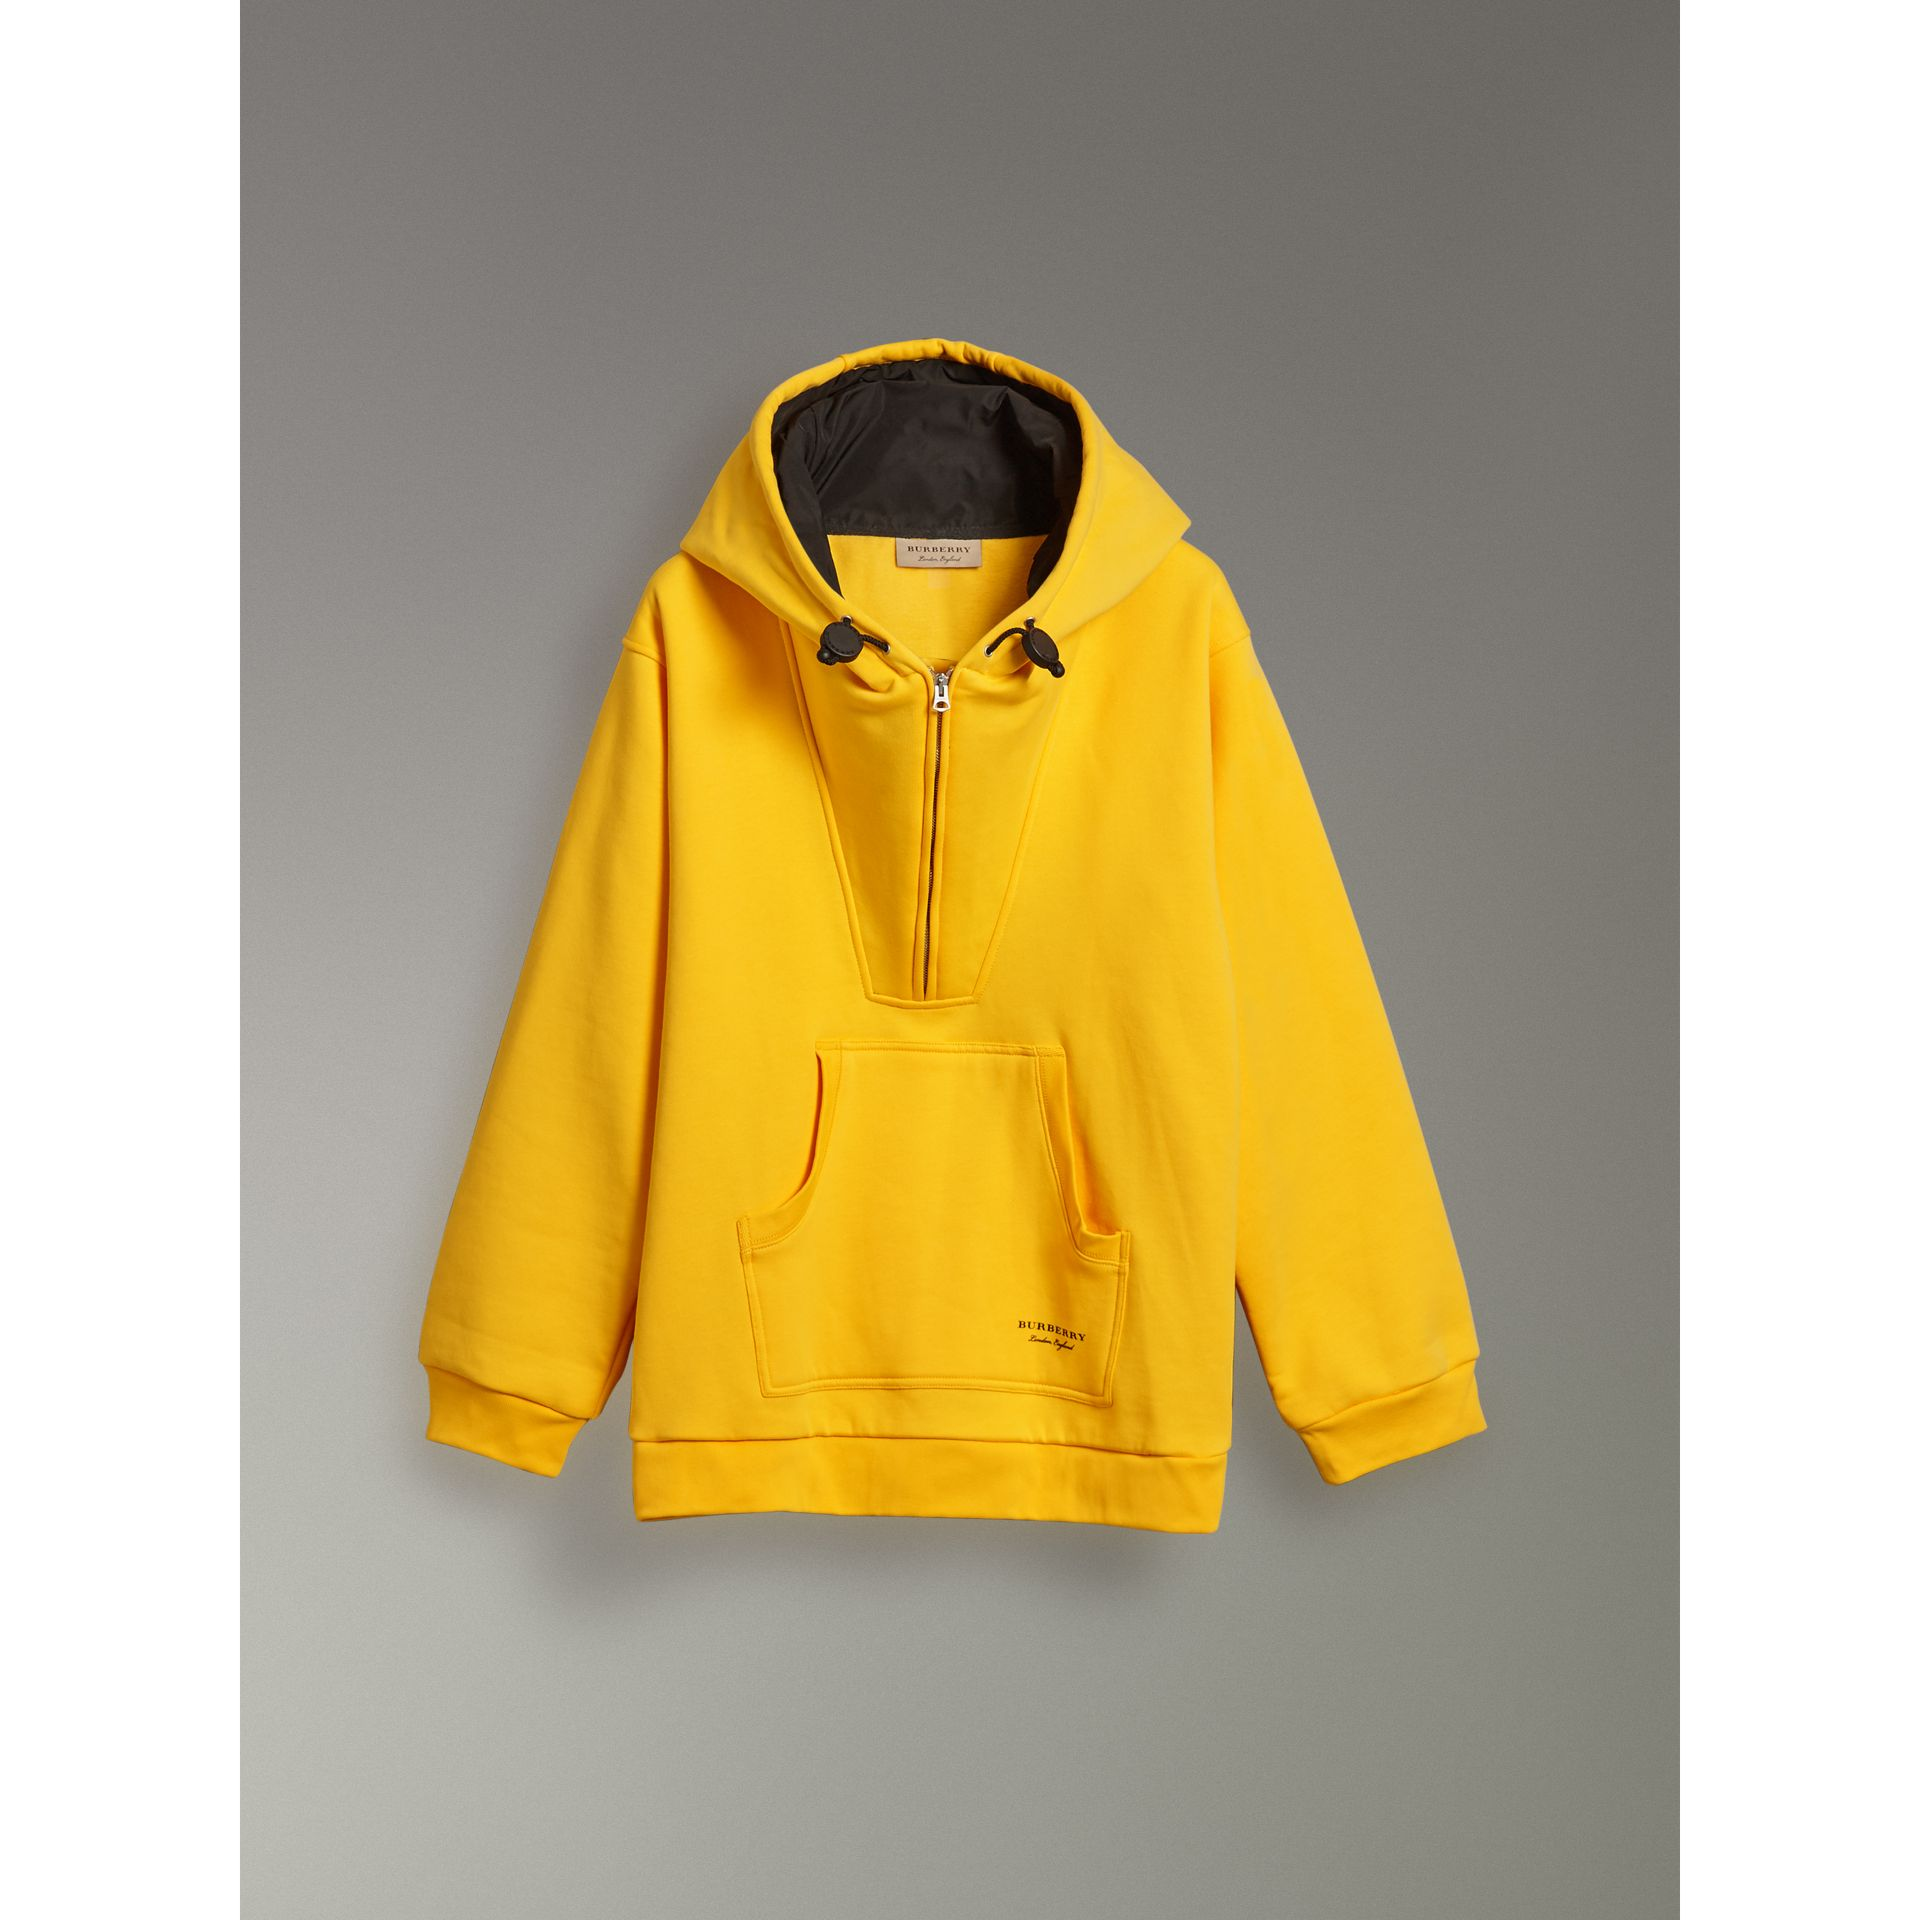 Oversized Sweatshirt Half-zip Hoodie in Bright Yellow - Men | Burberry United States - gallery image 3